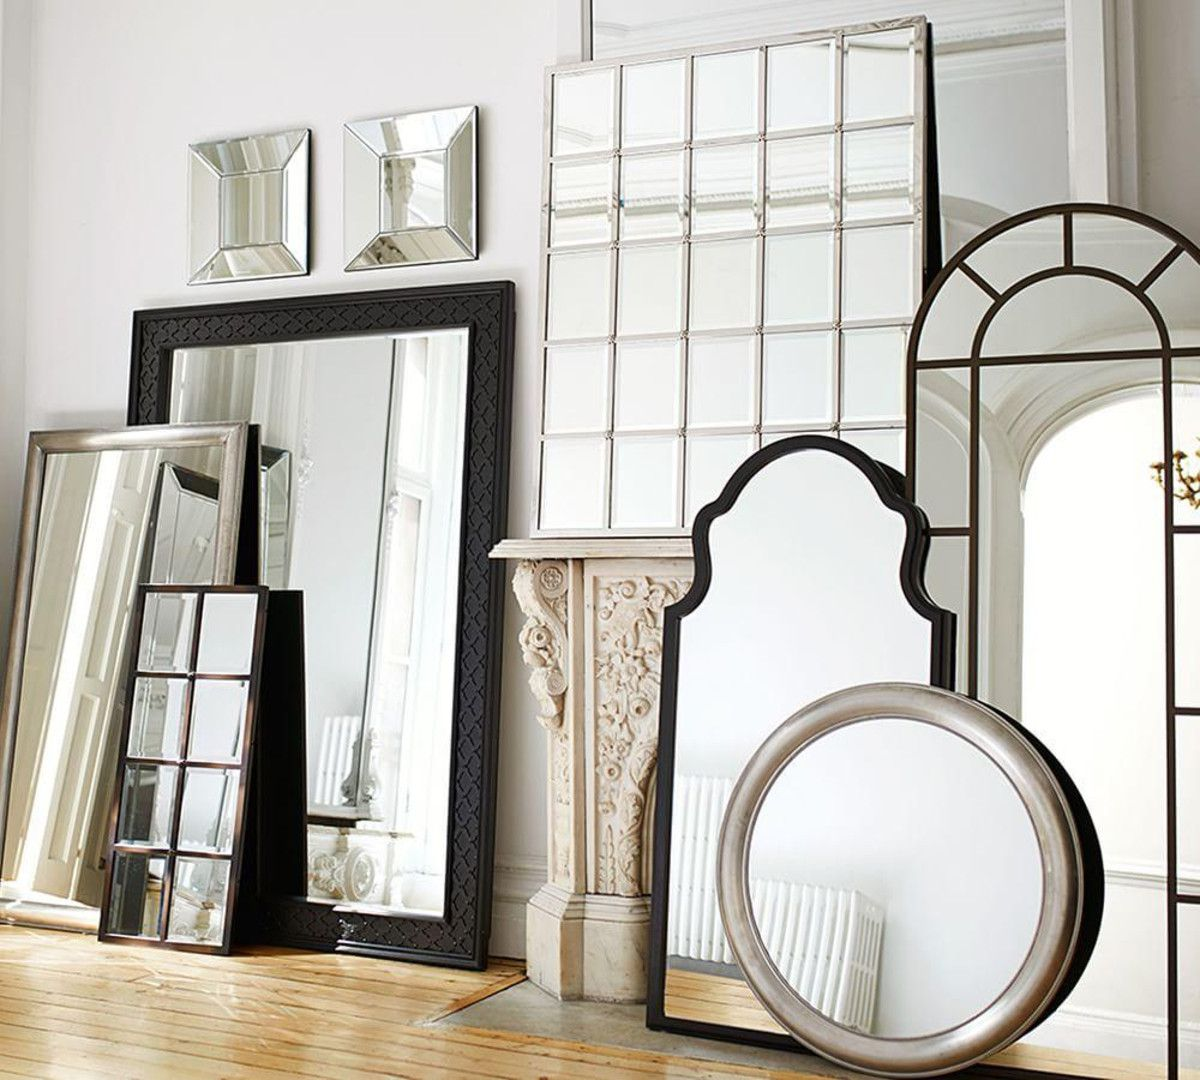 Multipanel-mirror-photo-12